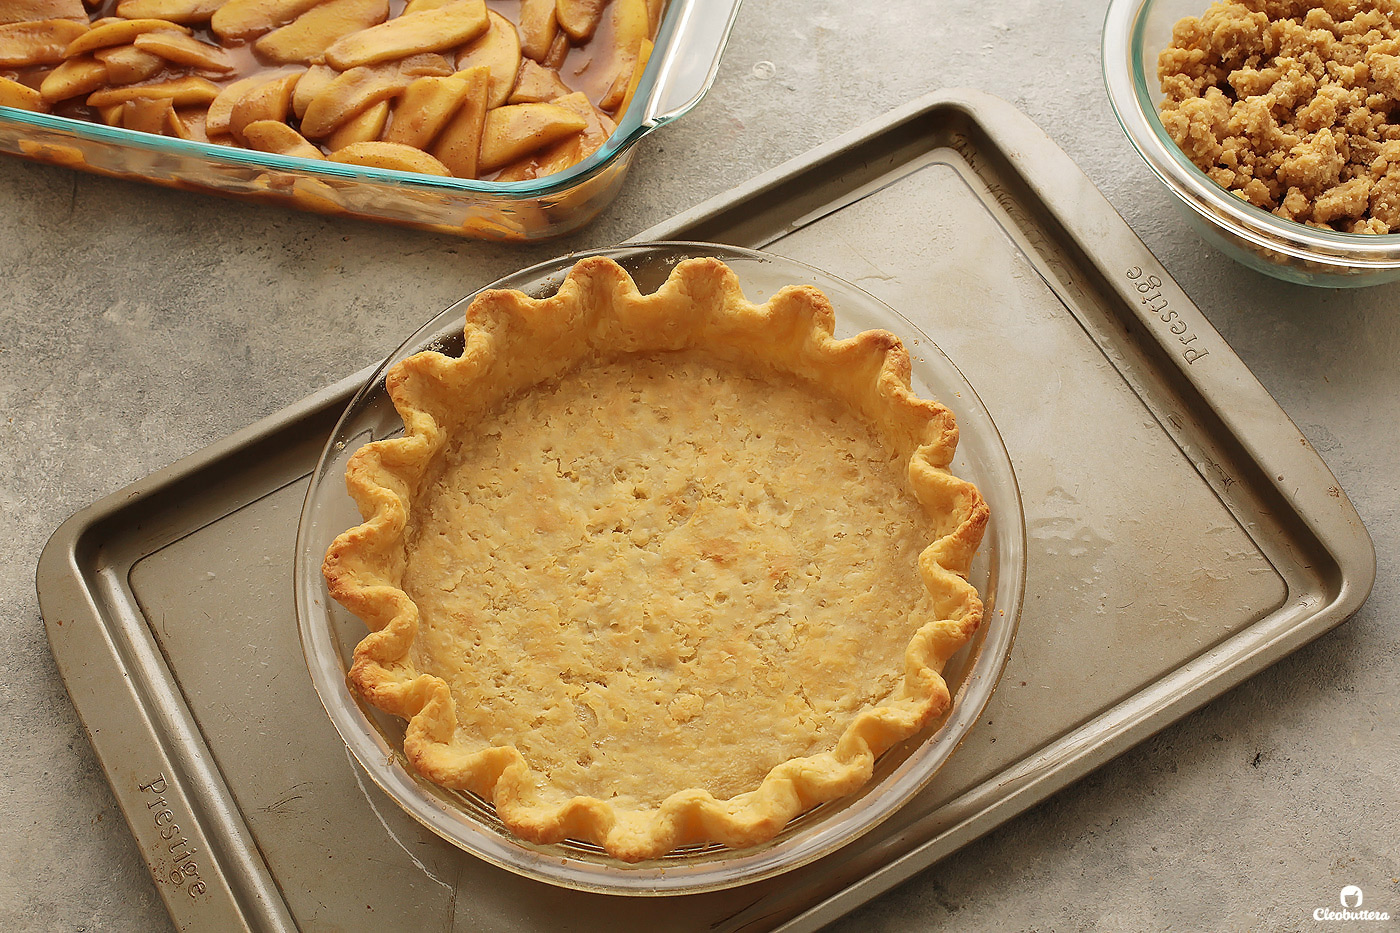 Forget everything you know about pie crust making!  This recipe uses an unconventional mixing method, to create the flakiest, most flavorful all-butter pie crust, that is a breeze to roll out, without the use of unusual ingredients.  It's a game-changer!